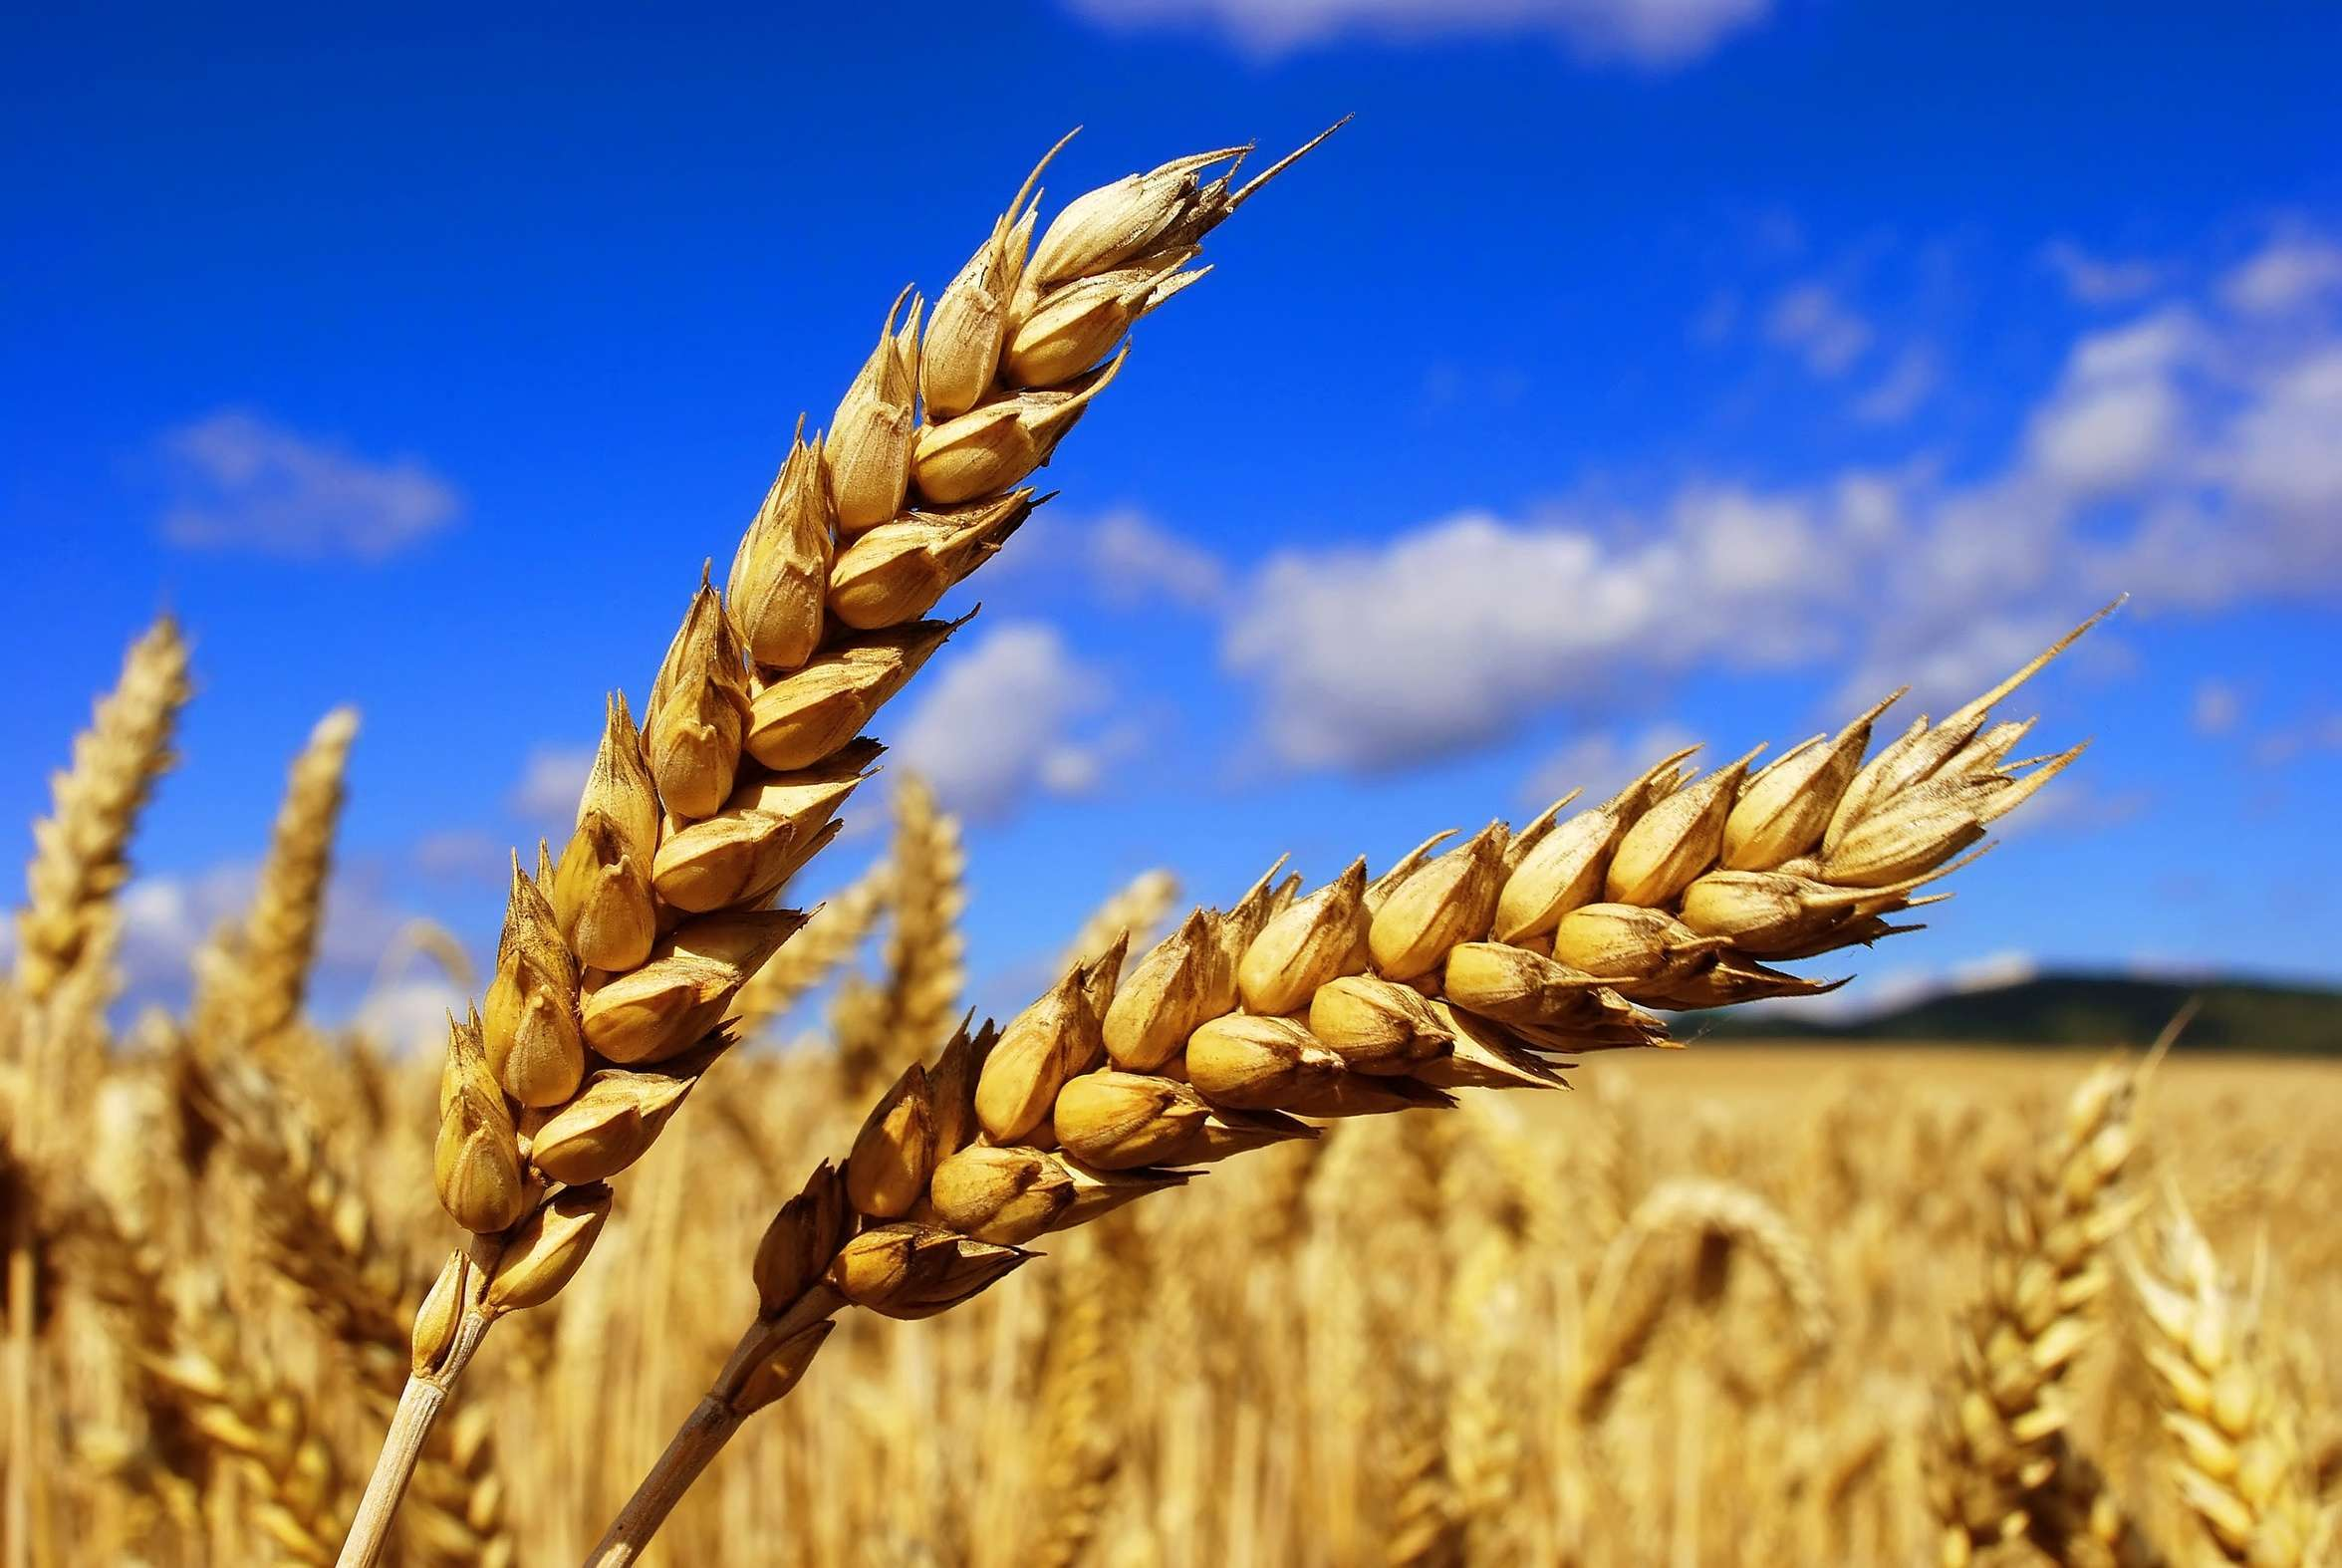 The export data of agricultural products in Ukraine for 2016